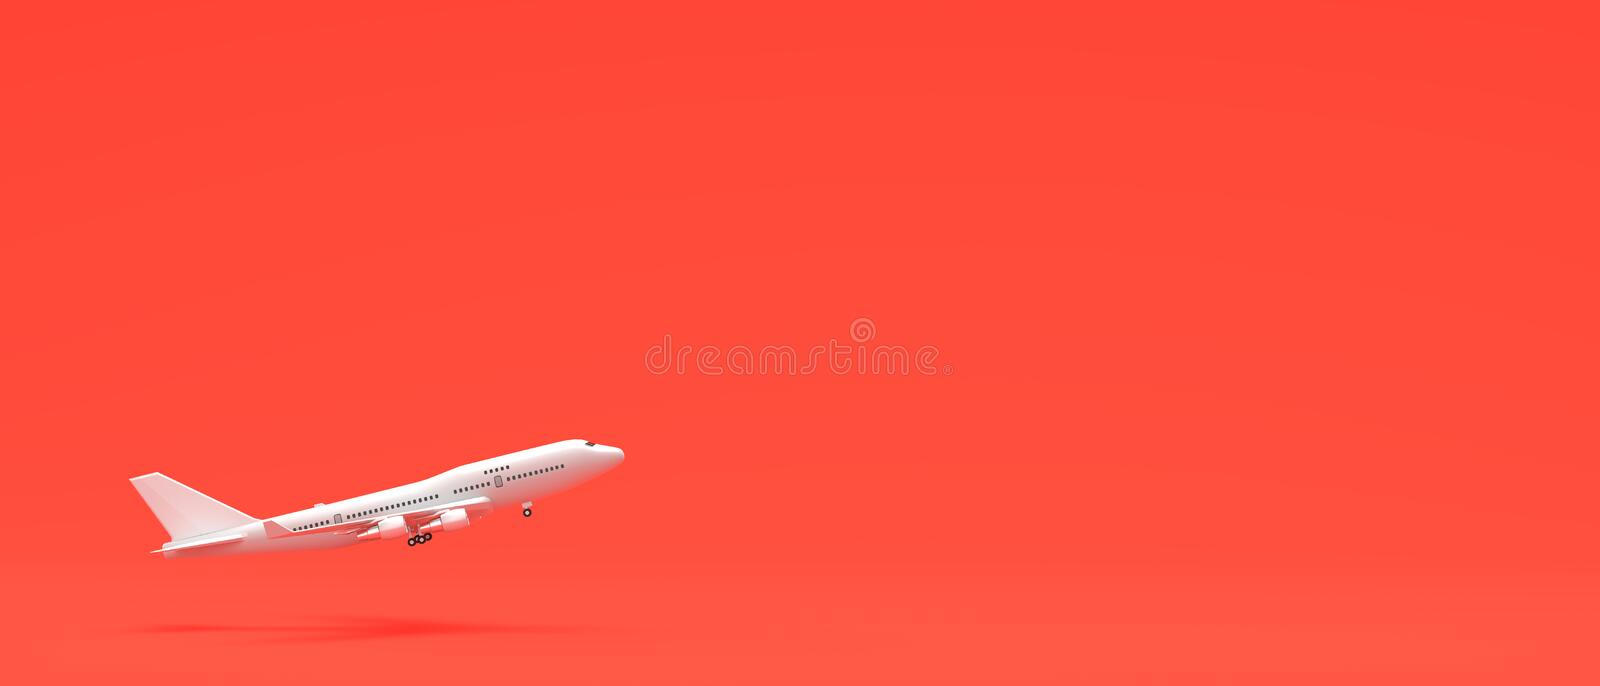 White airplane isolated on coral pink background. 3D illustration.  stock illustration